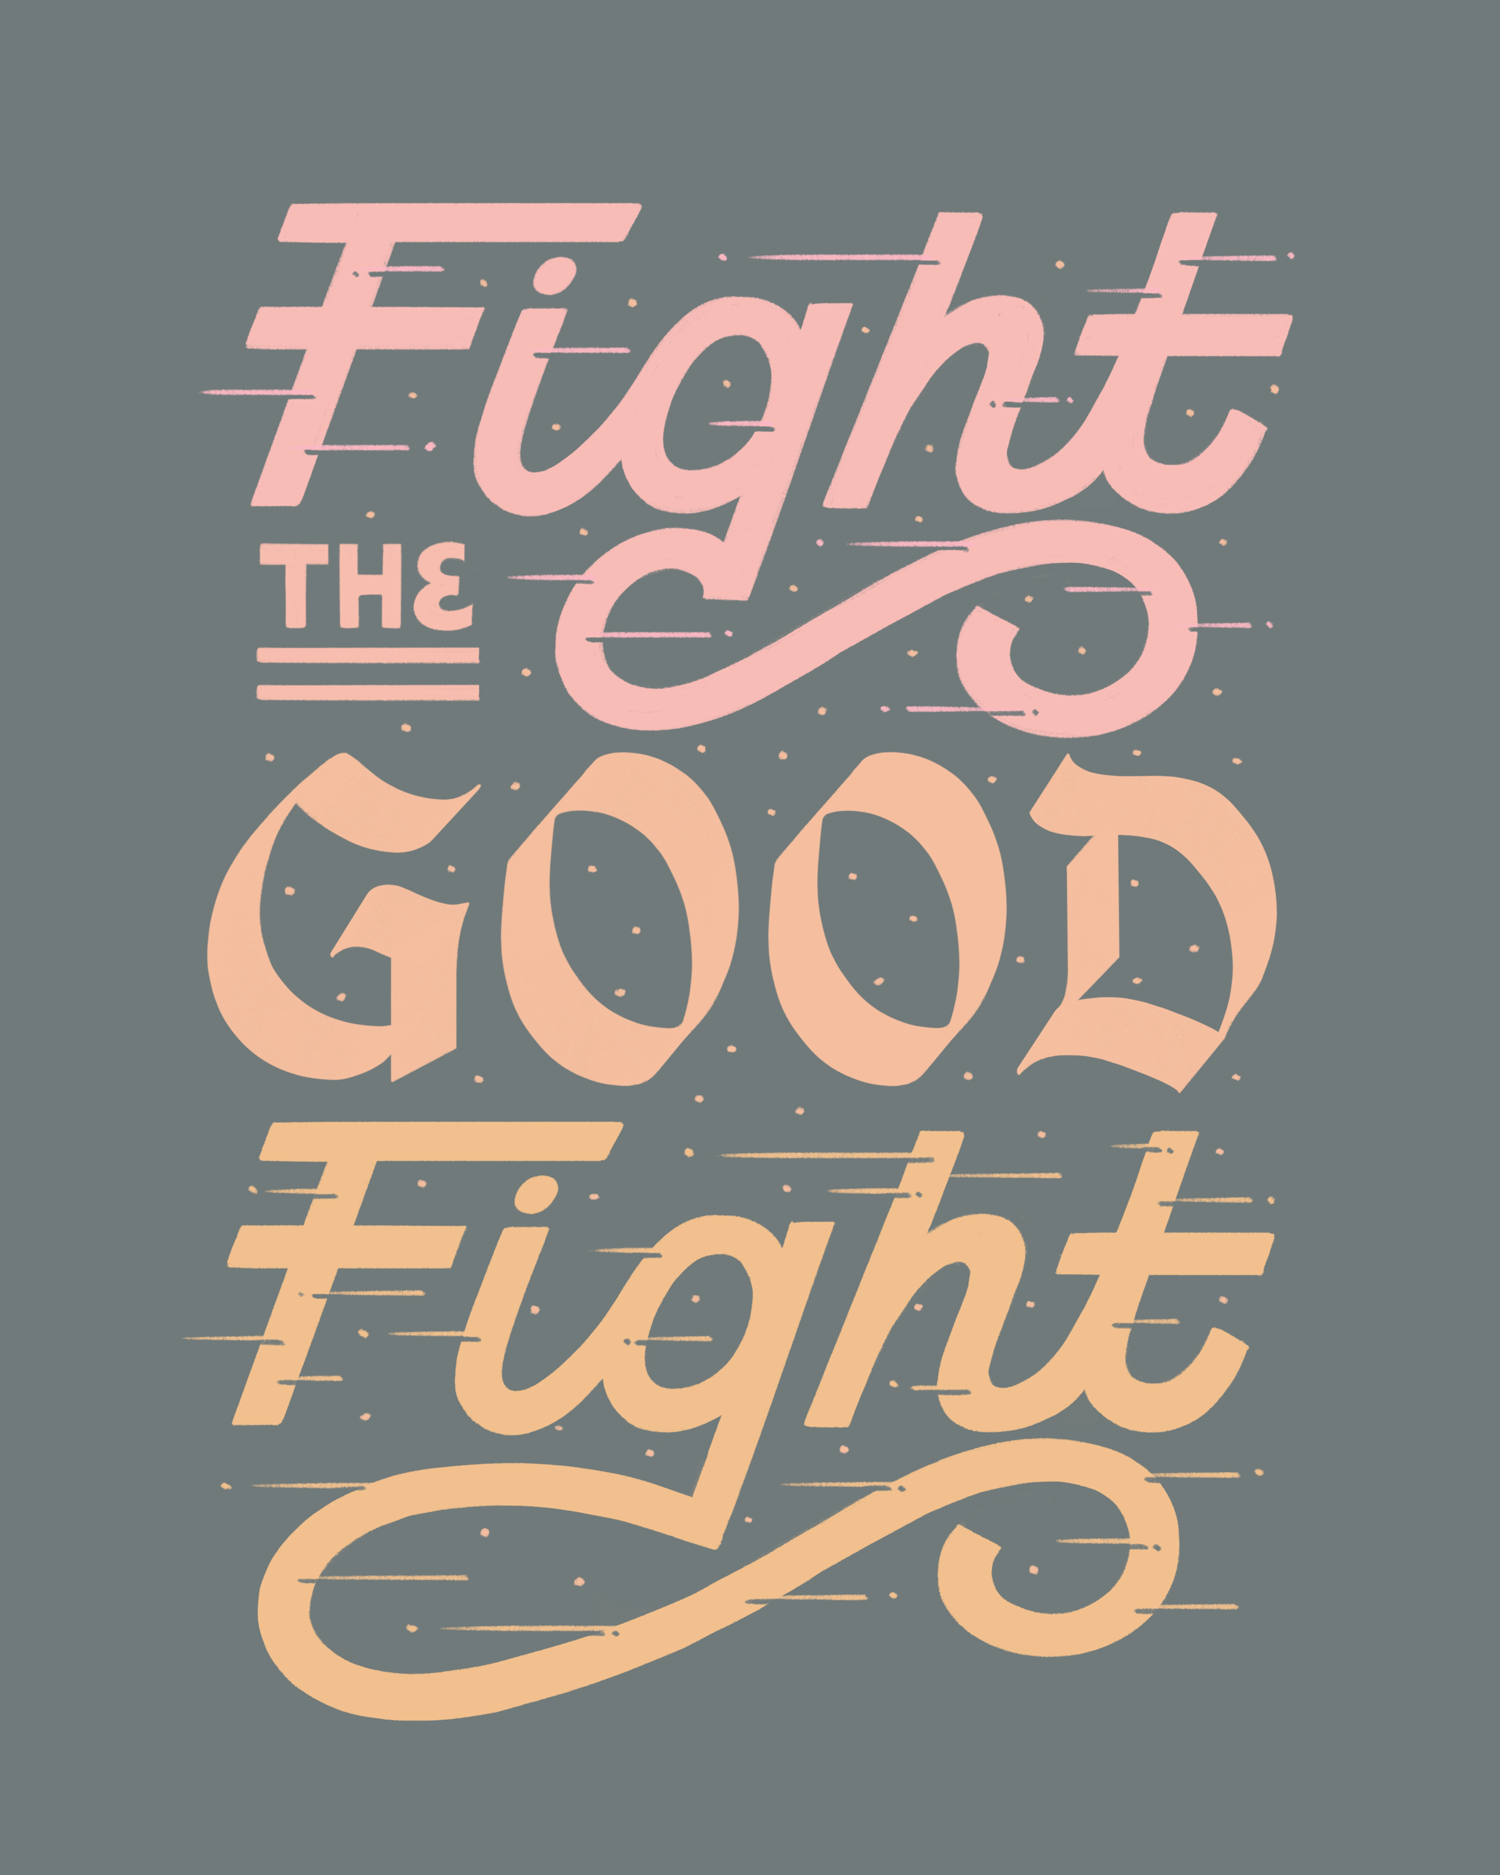 FightTheGoodFight.png Logo's, Training, Liefde